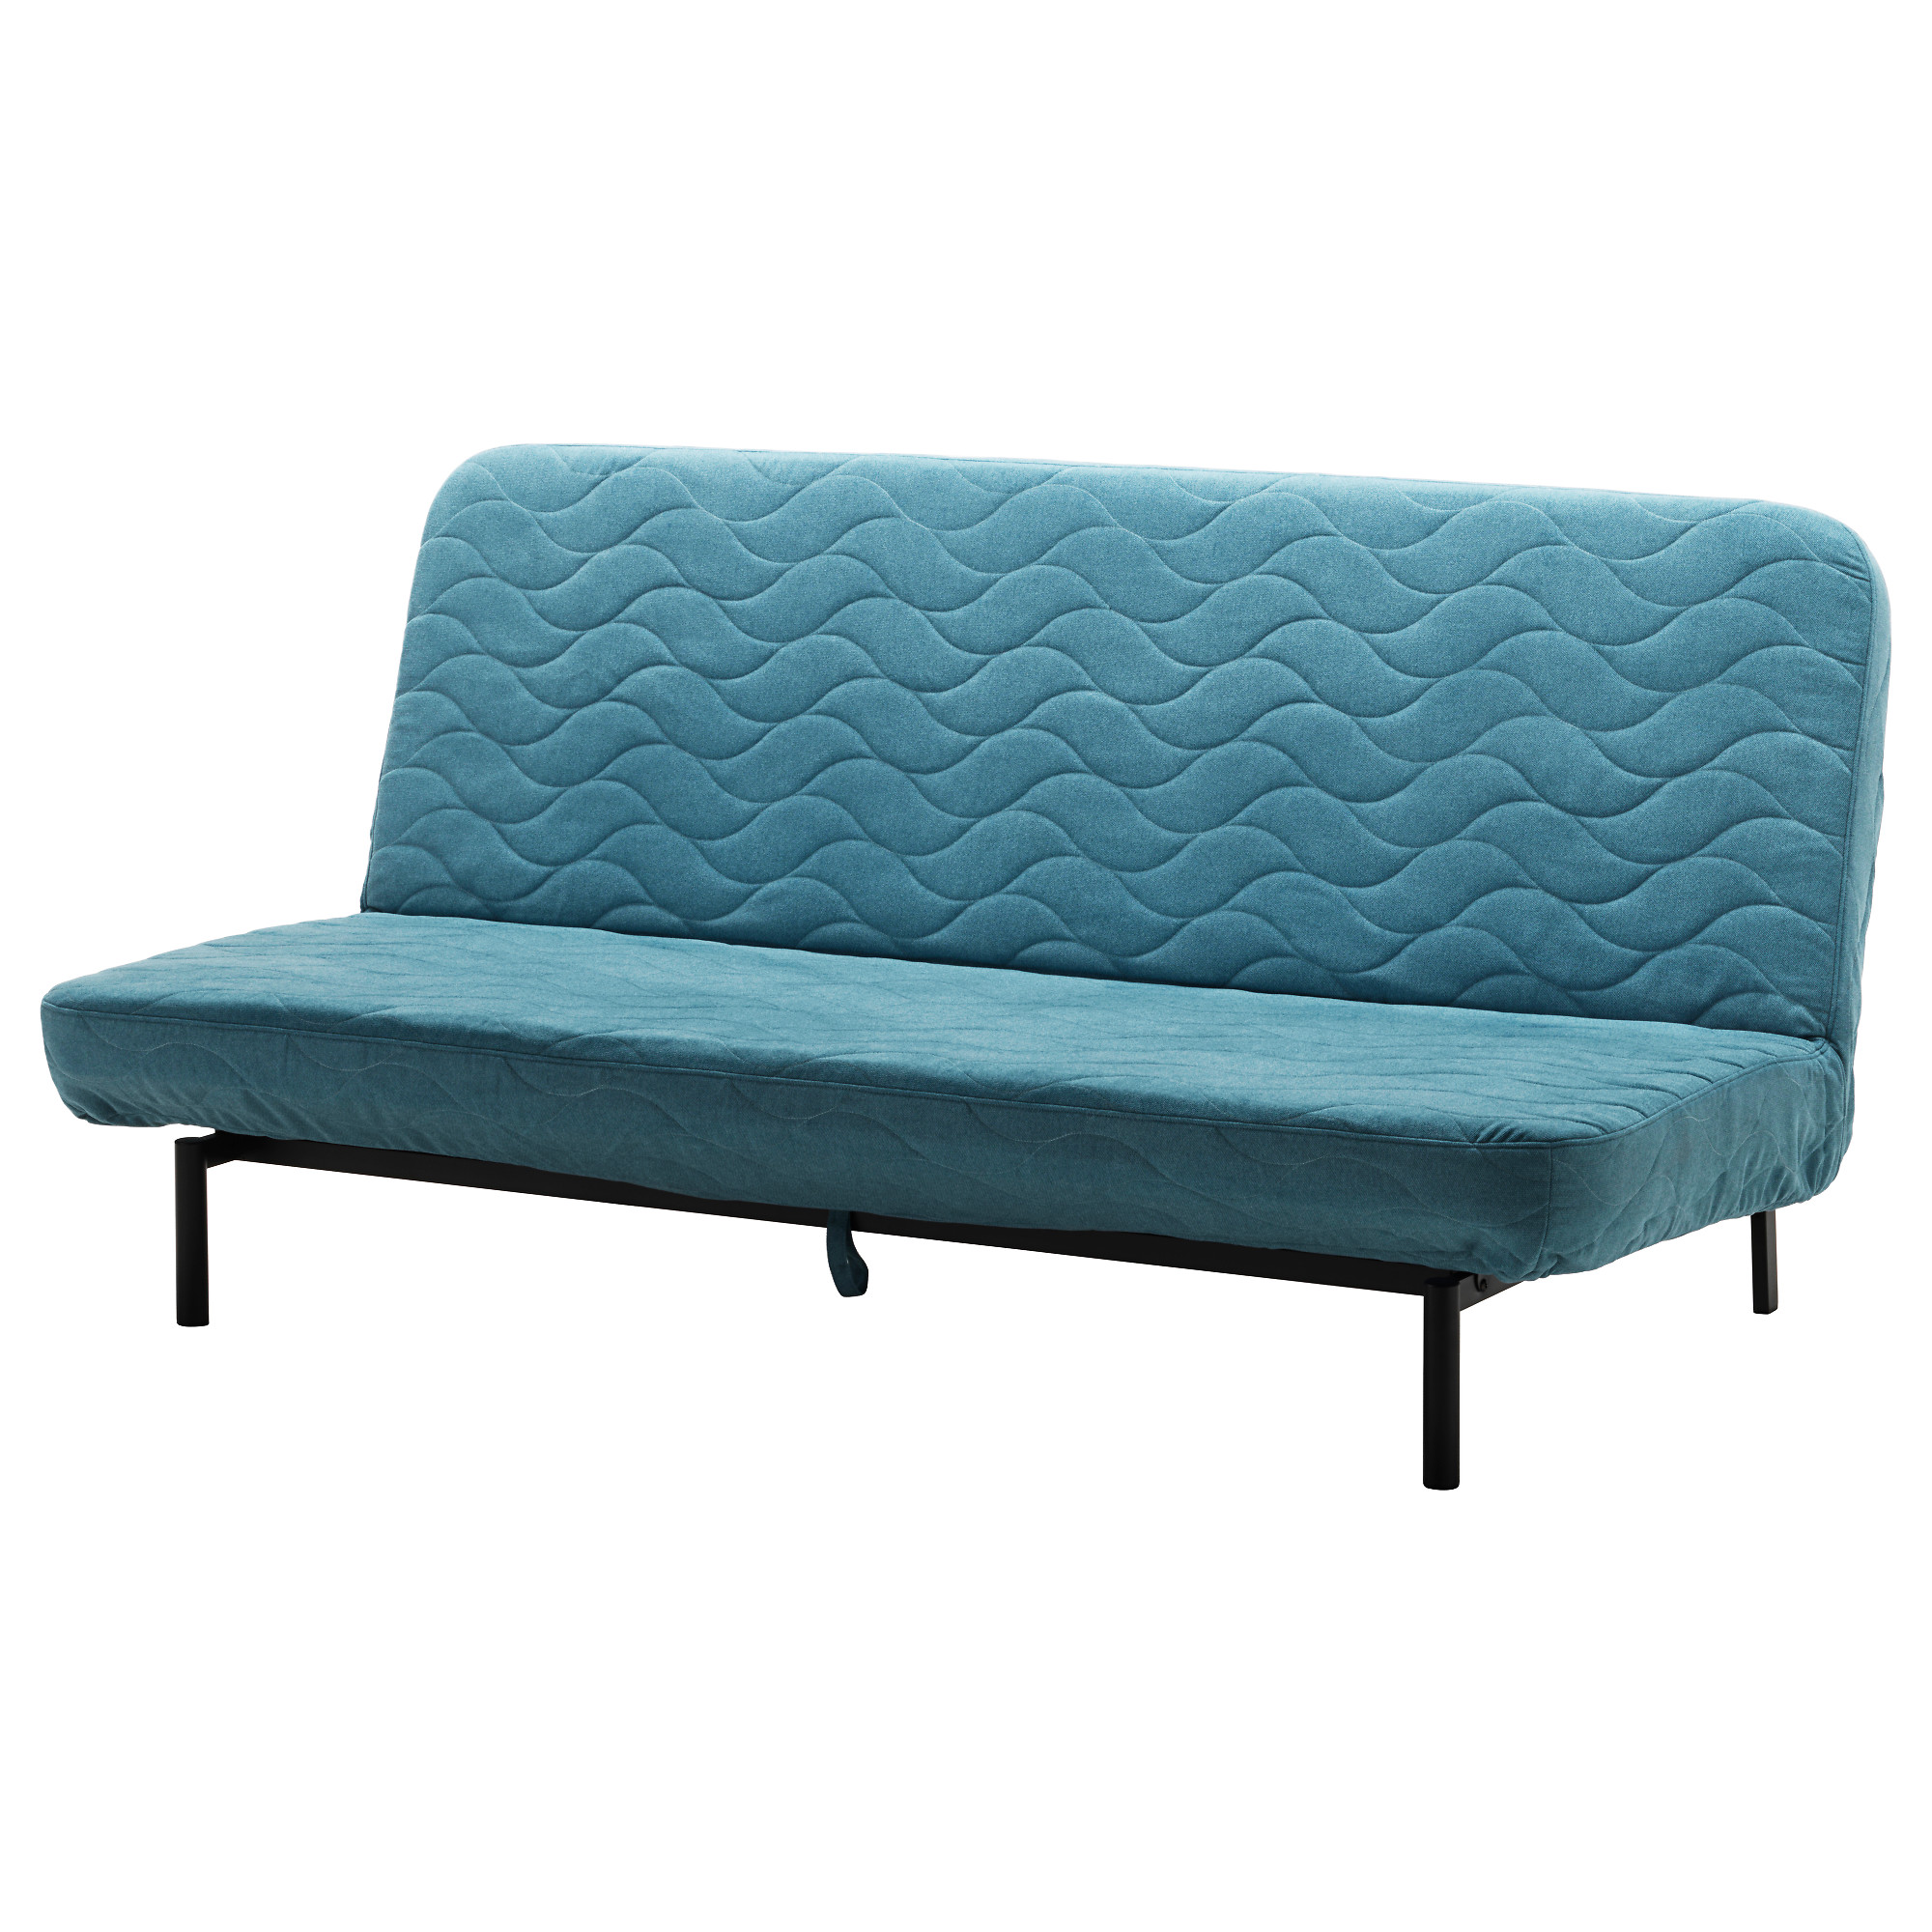 futon sofa nyhamn sleeper sofa, with foam mattress, borred green/blue width: 78 3 JGRRMLH